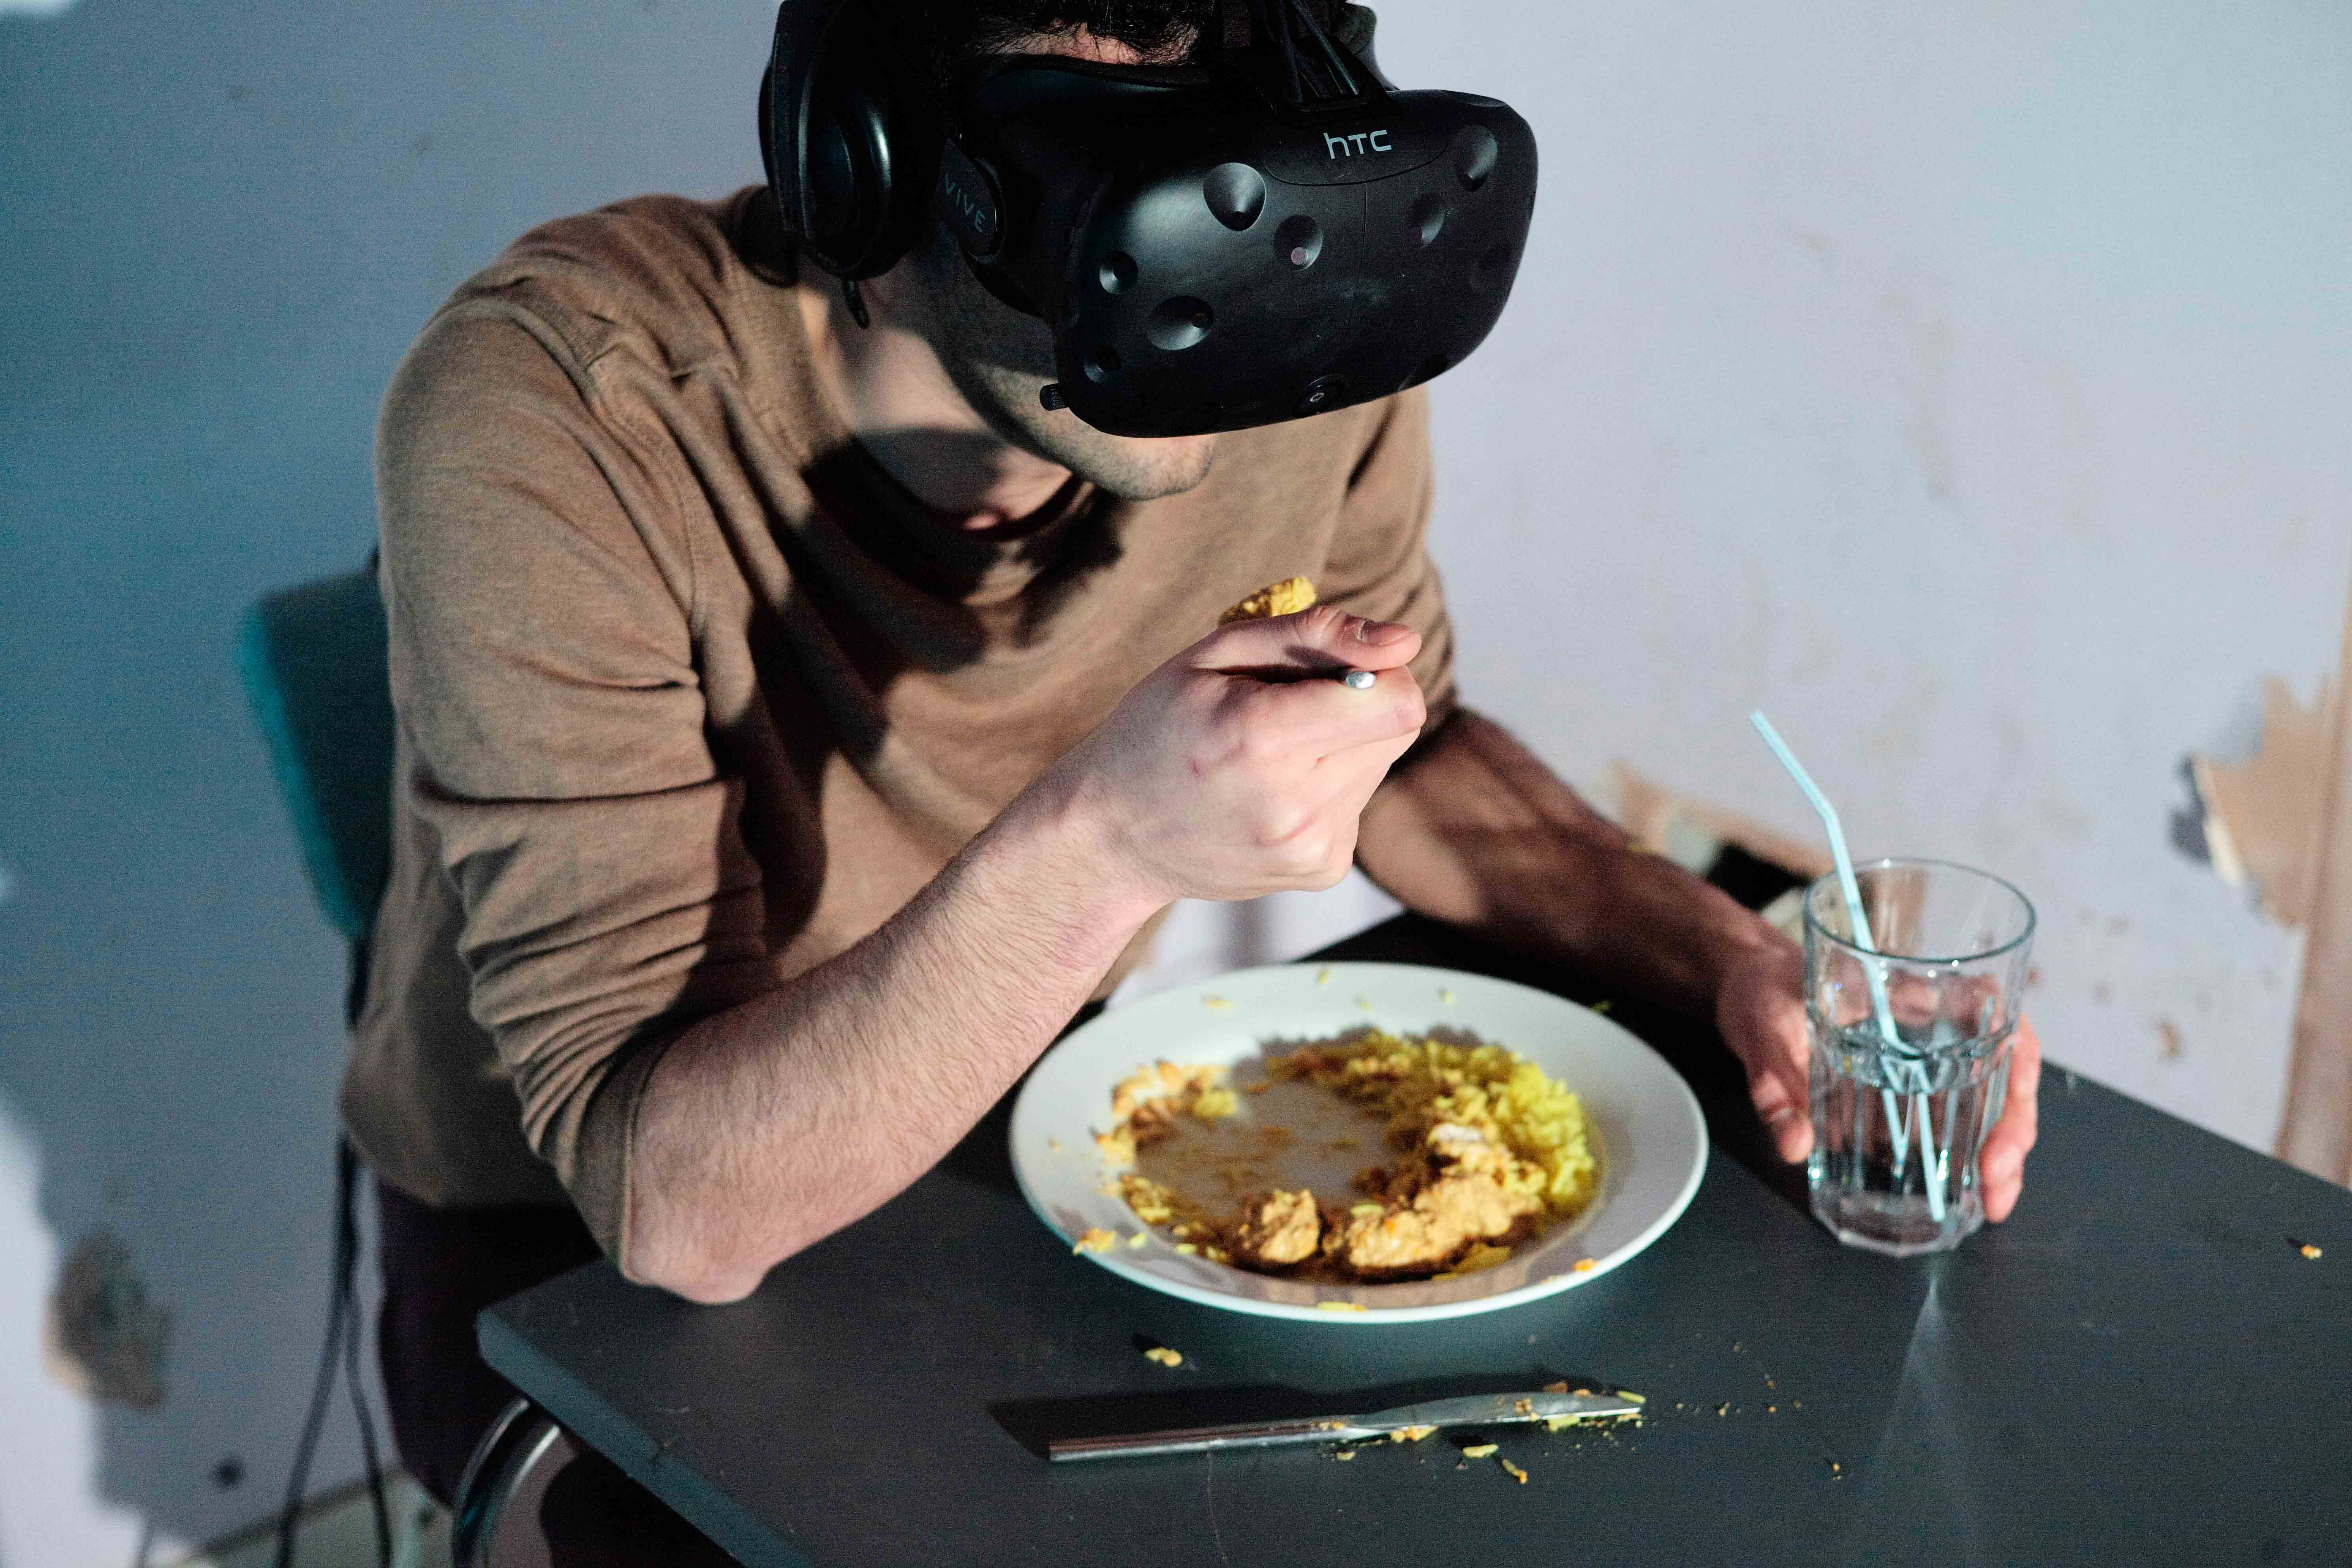 The artist wearing the VR headset eating a curry at the table.